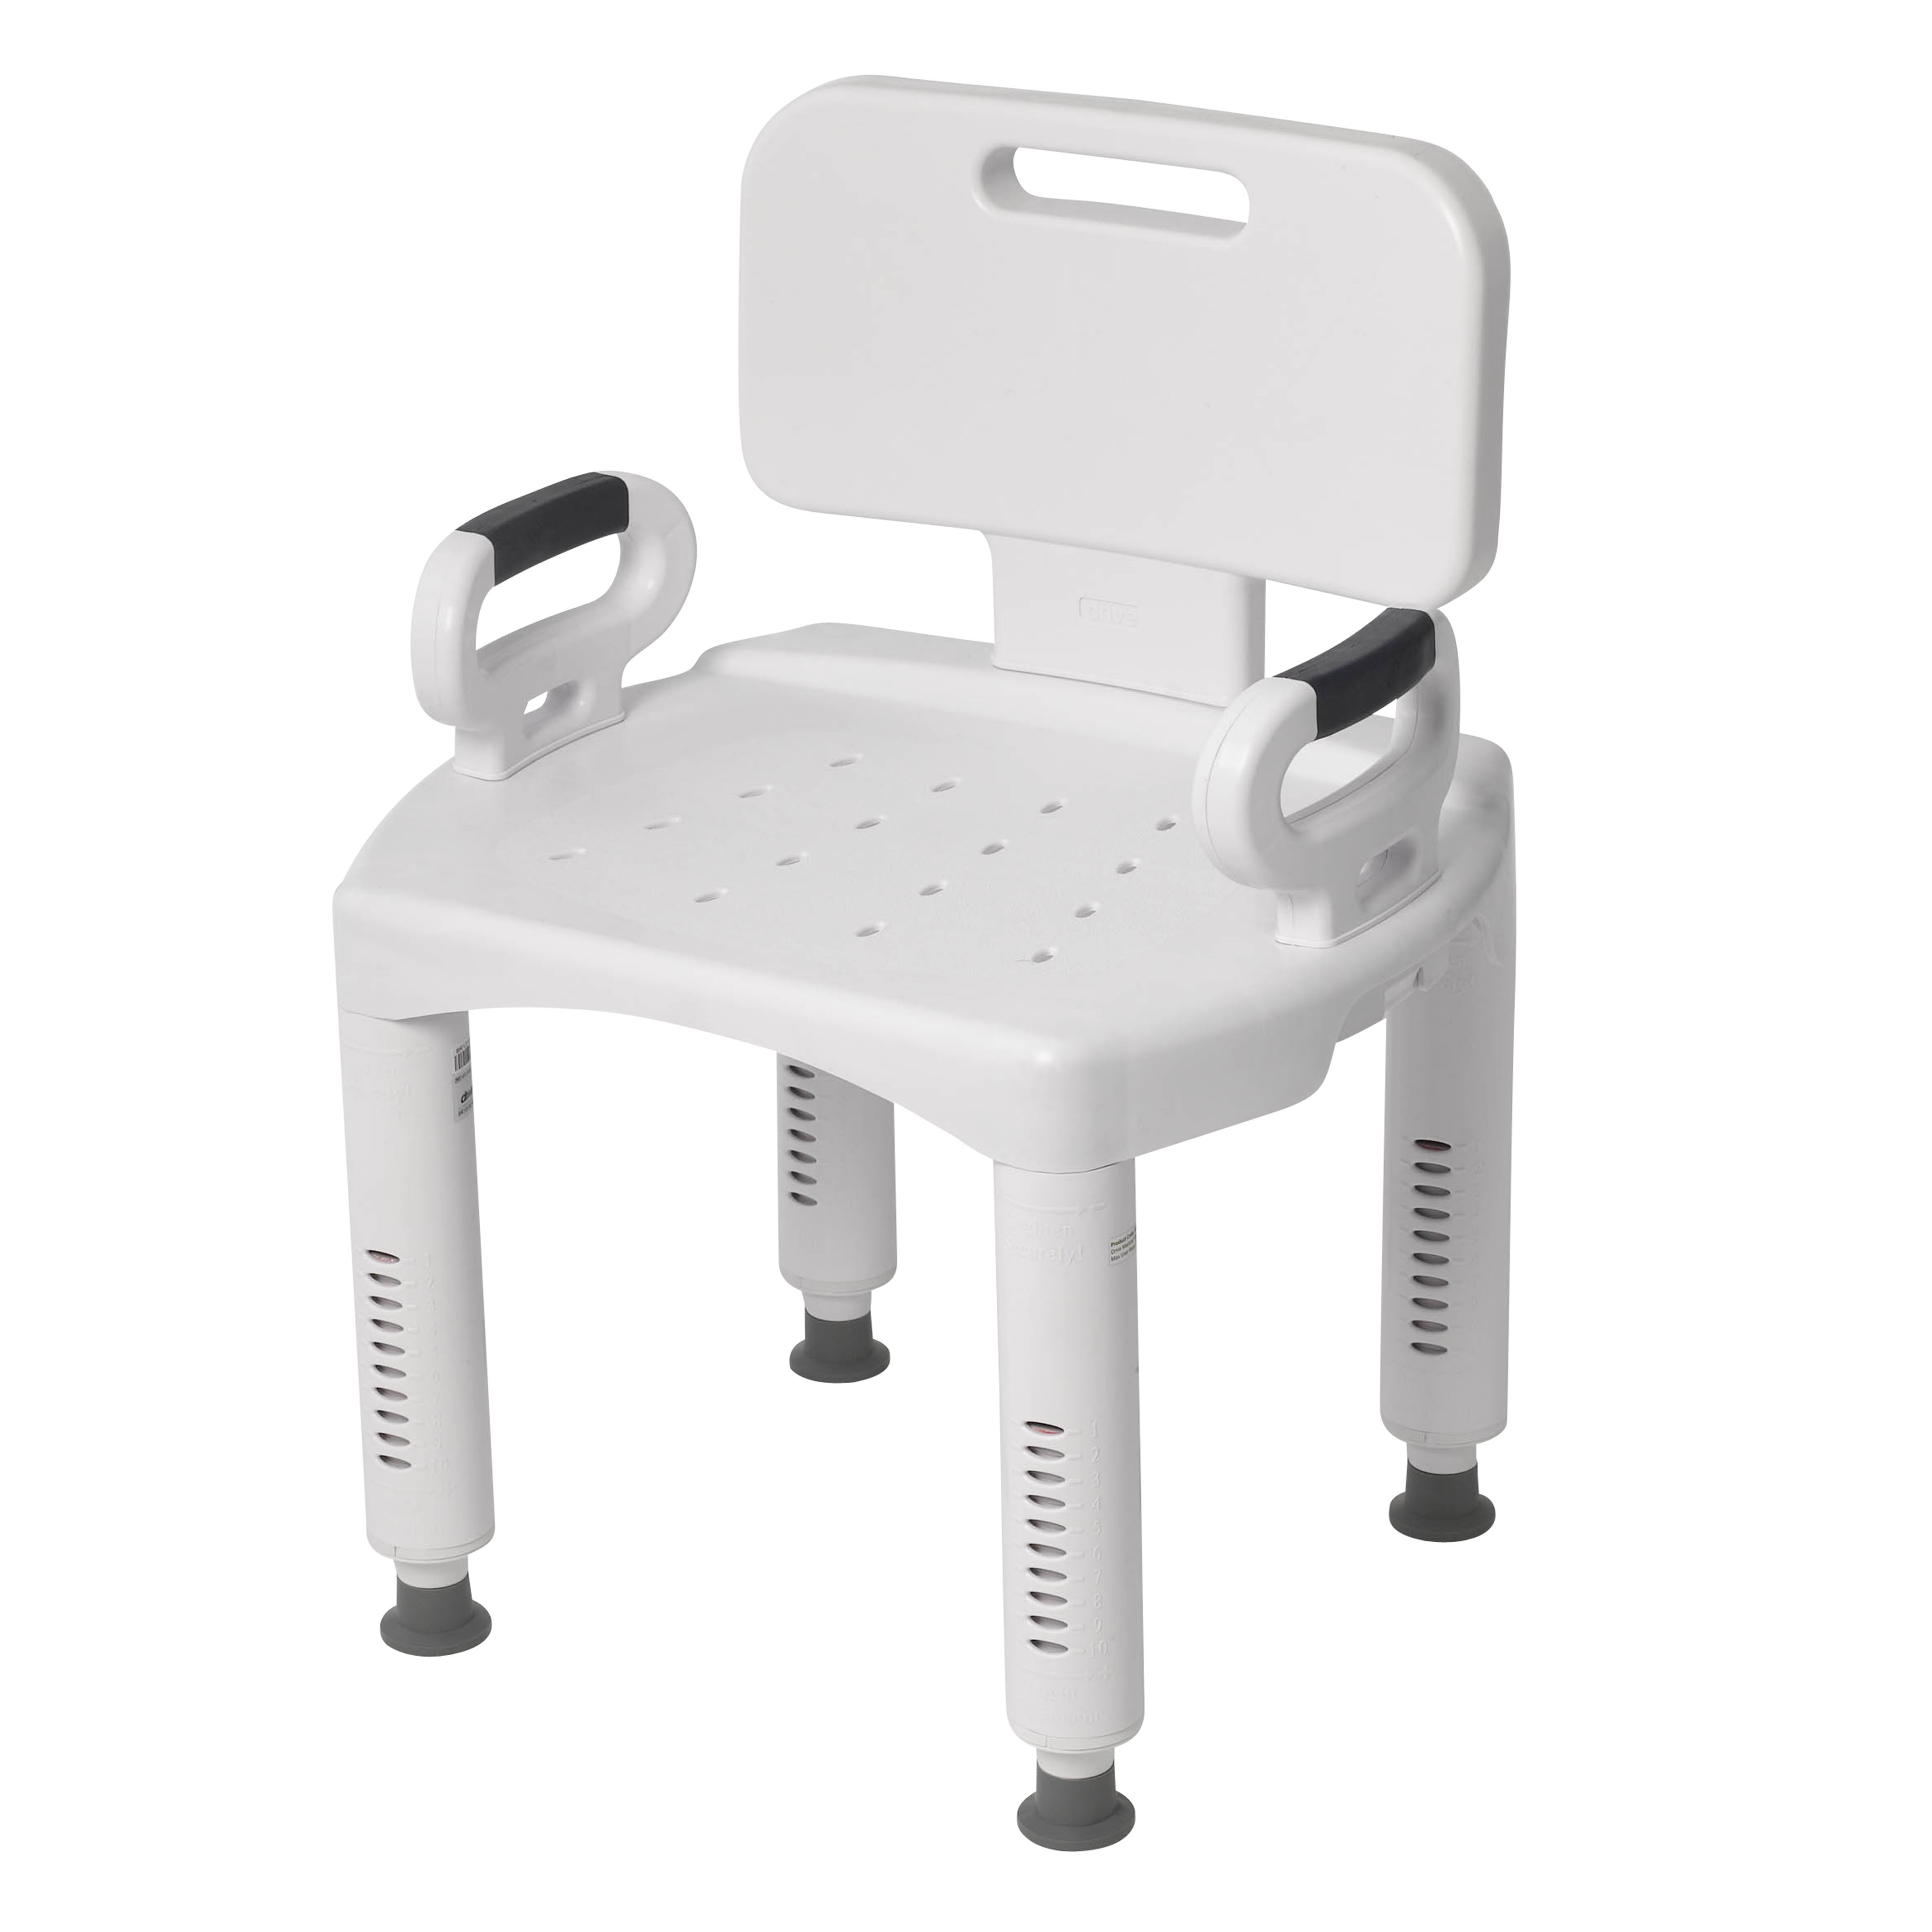 Premium Series Shower Chair with Back and Arms - $50.83 | OJCommerce